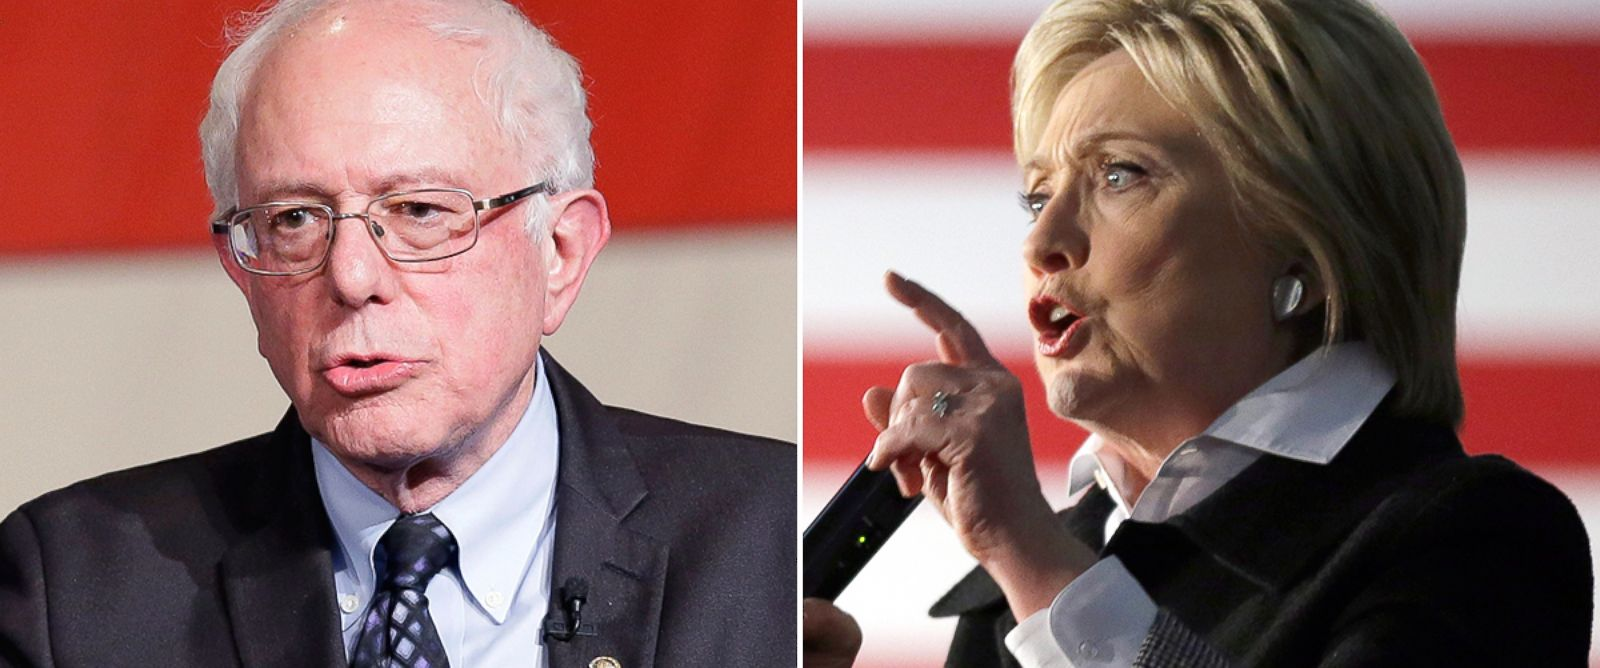 PHOTO: Bernie Sanders, left, and Hillary Clinton speak at campaign rallies in Detroit, March 7, 2016.